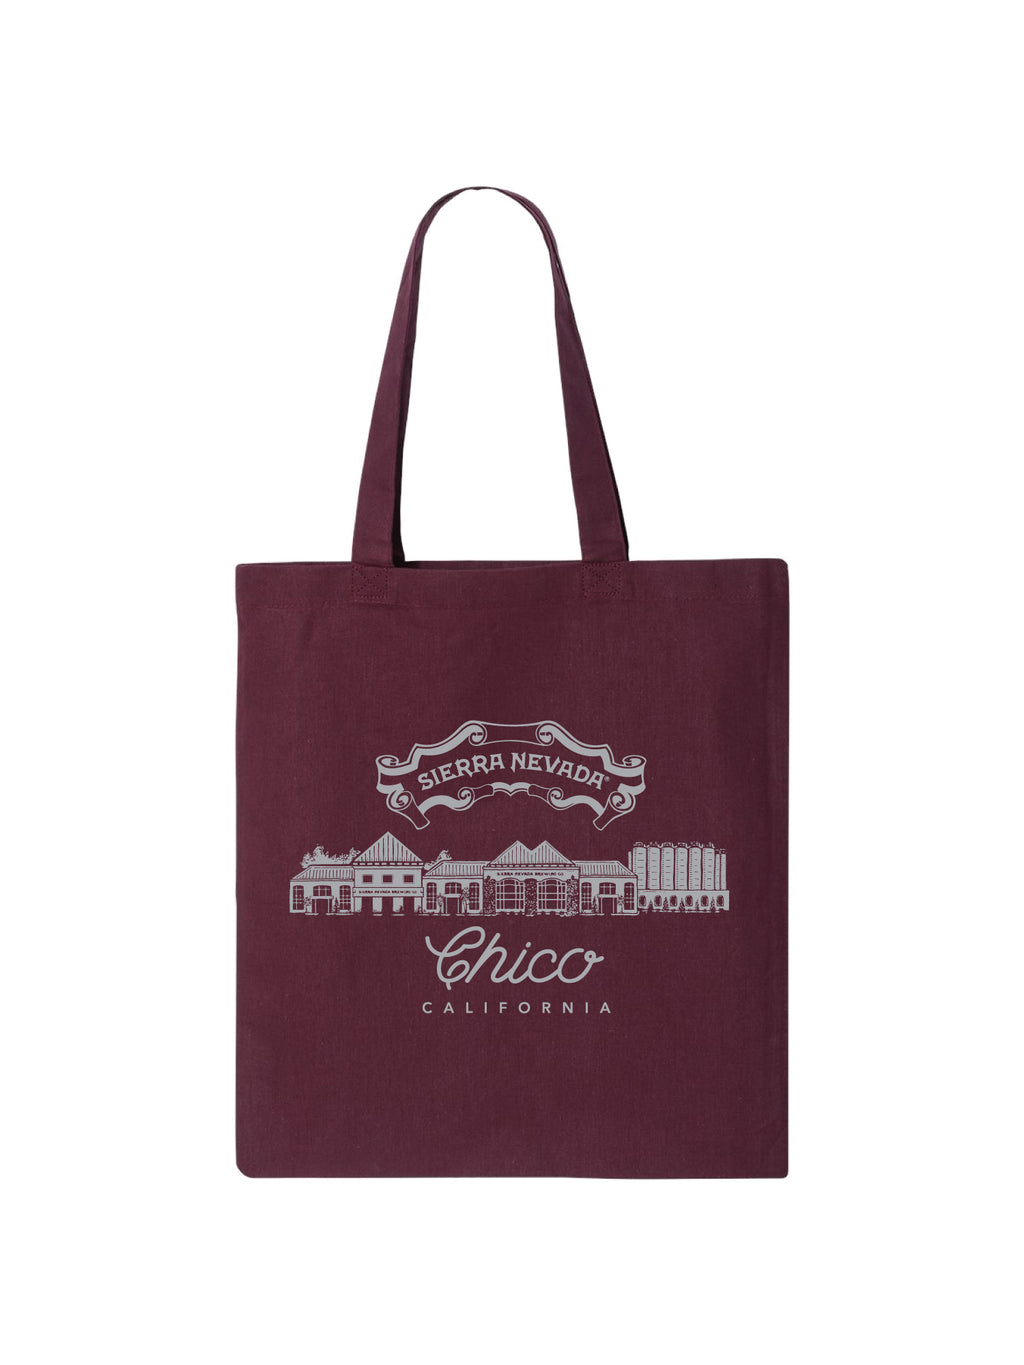 TOTE CHICO BAG- ARMY - Anderson Bros Design and Supply